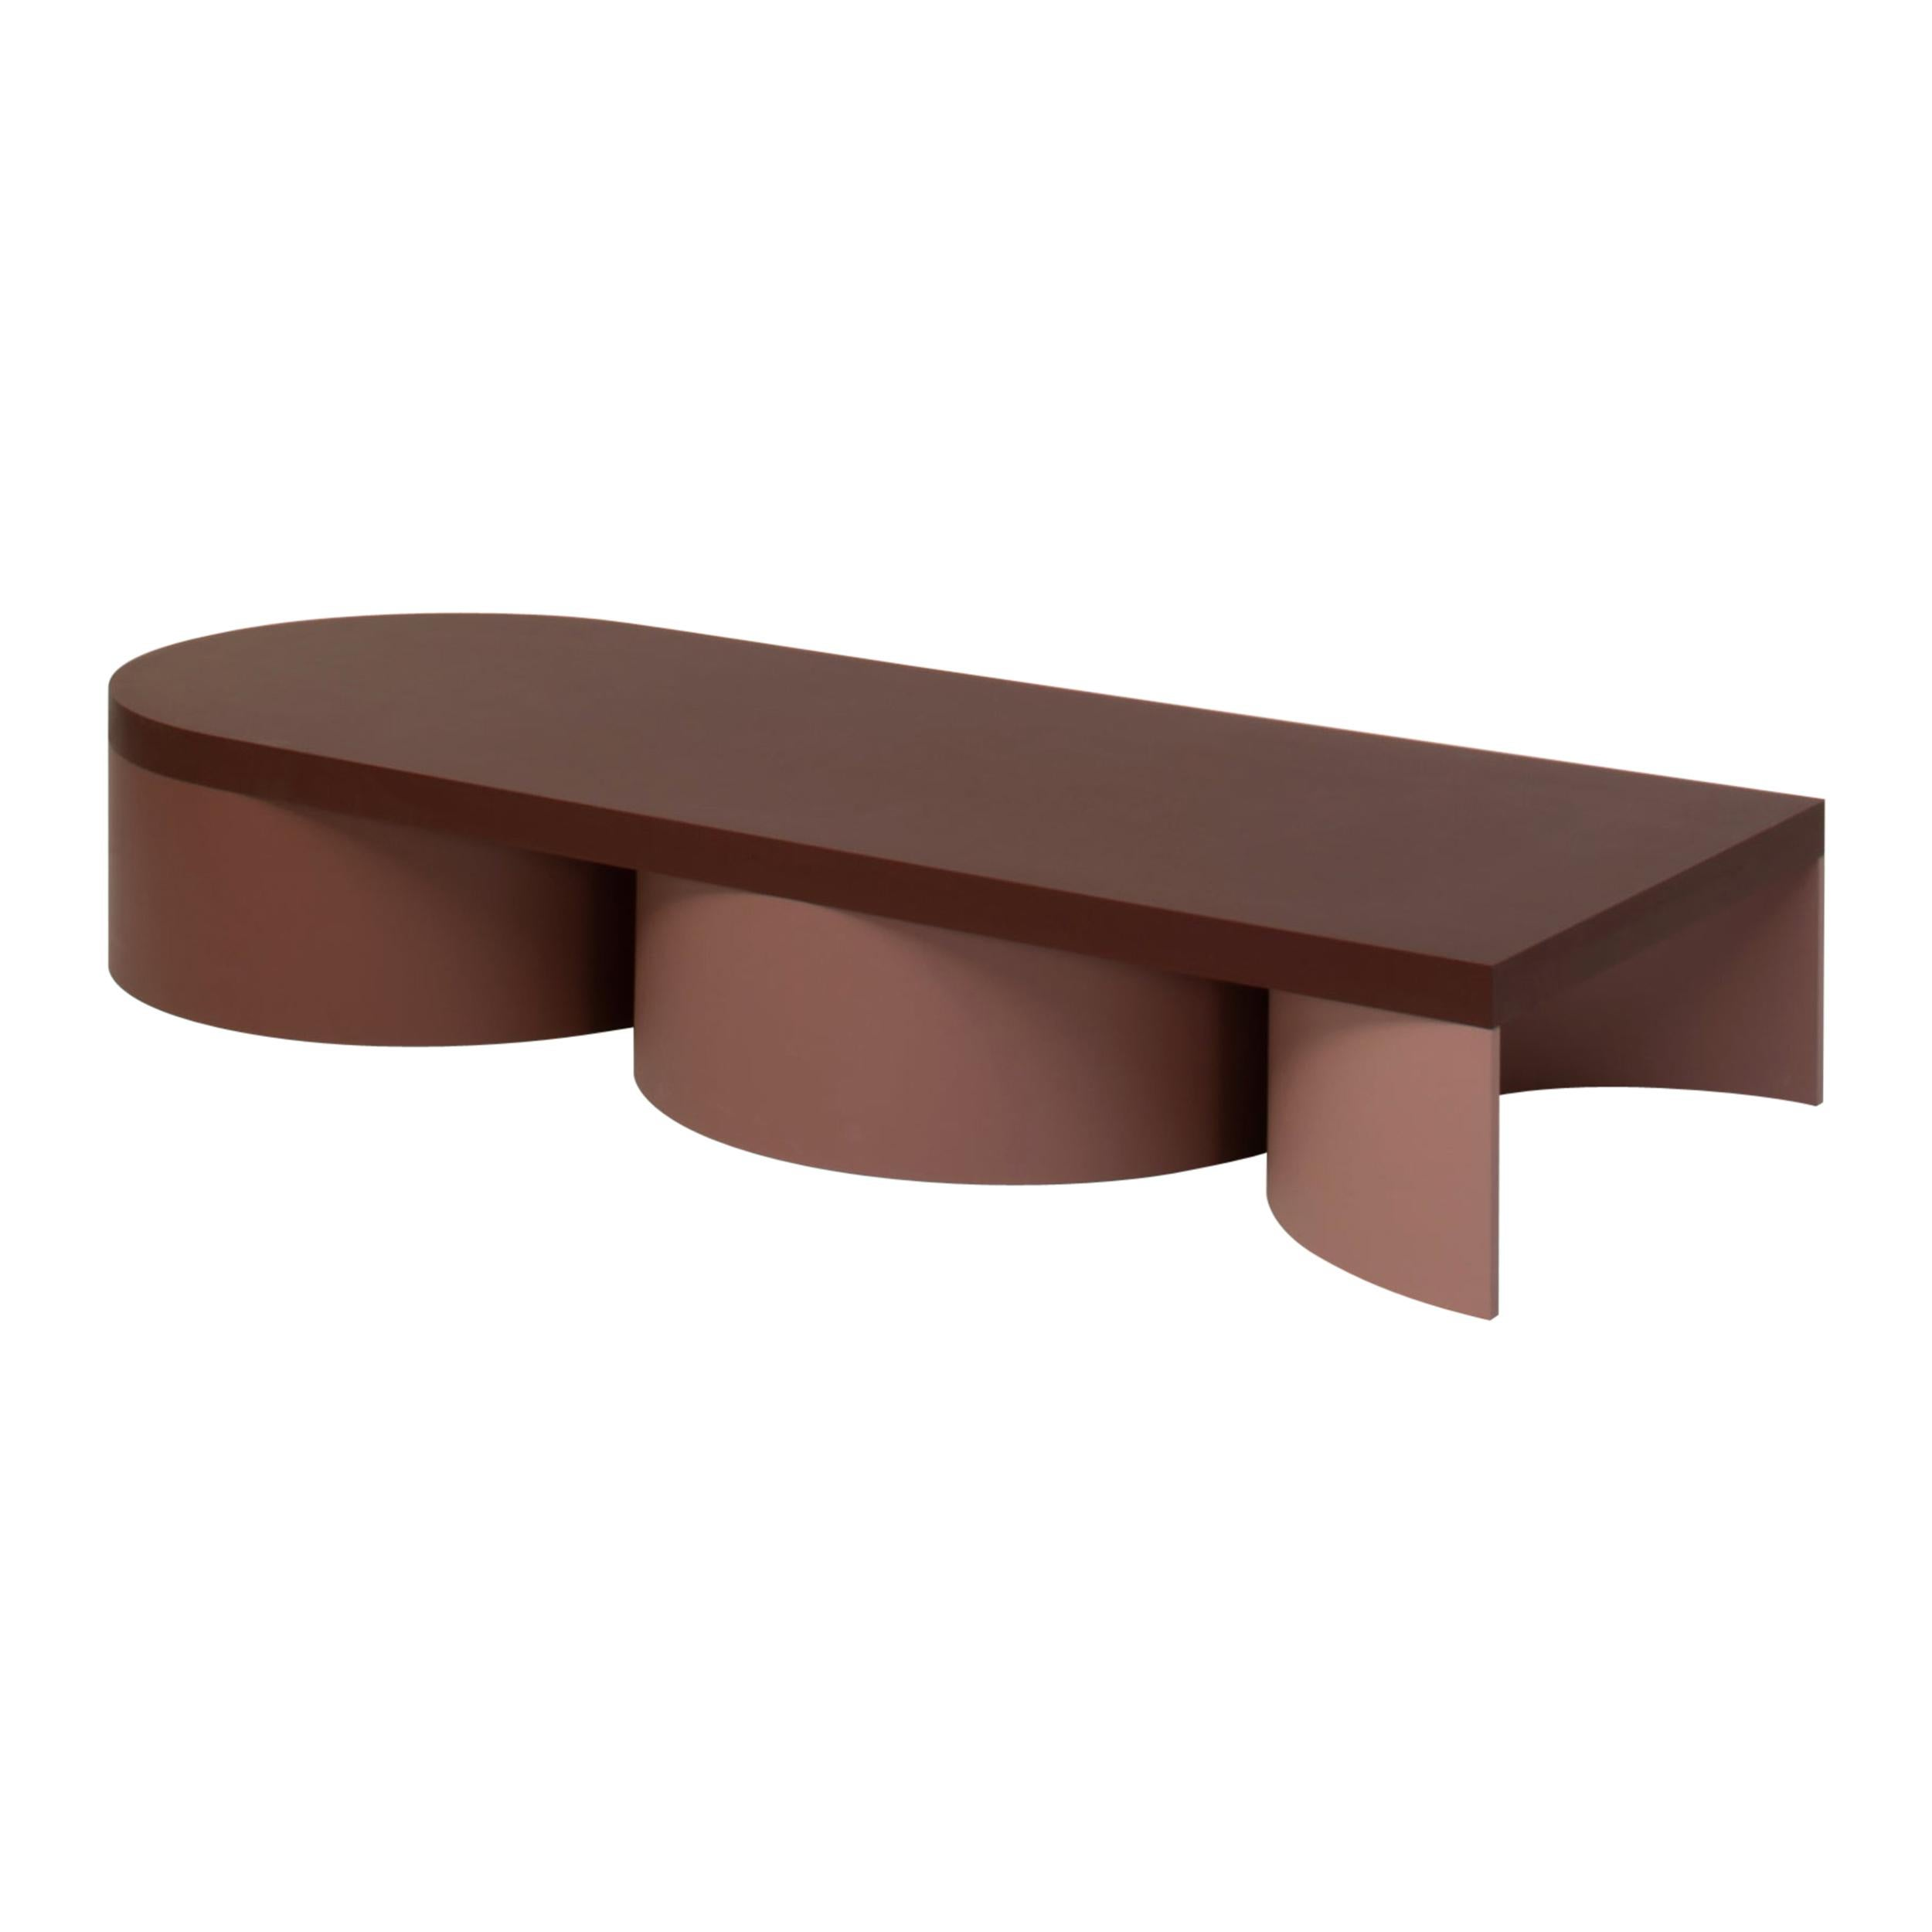 Low Table Colorful Design Contemporary Table Rounded Shapes Form Low Table 3